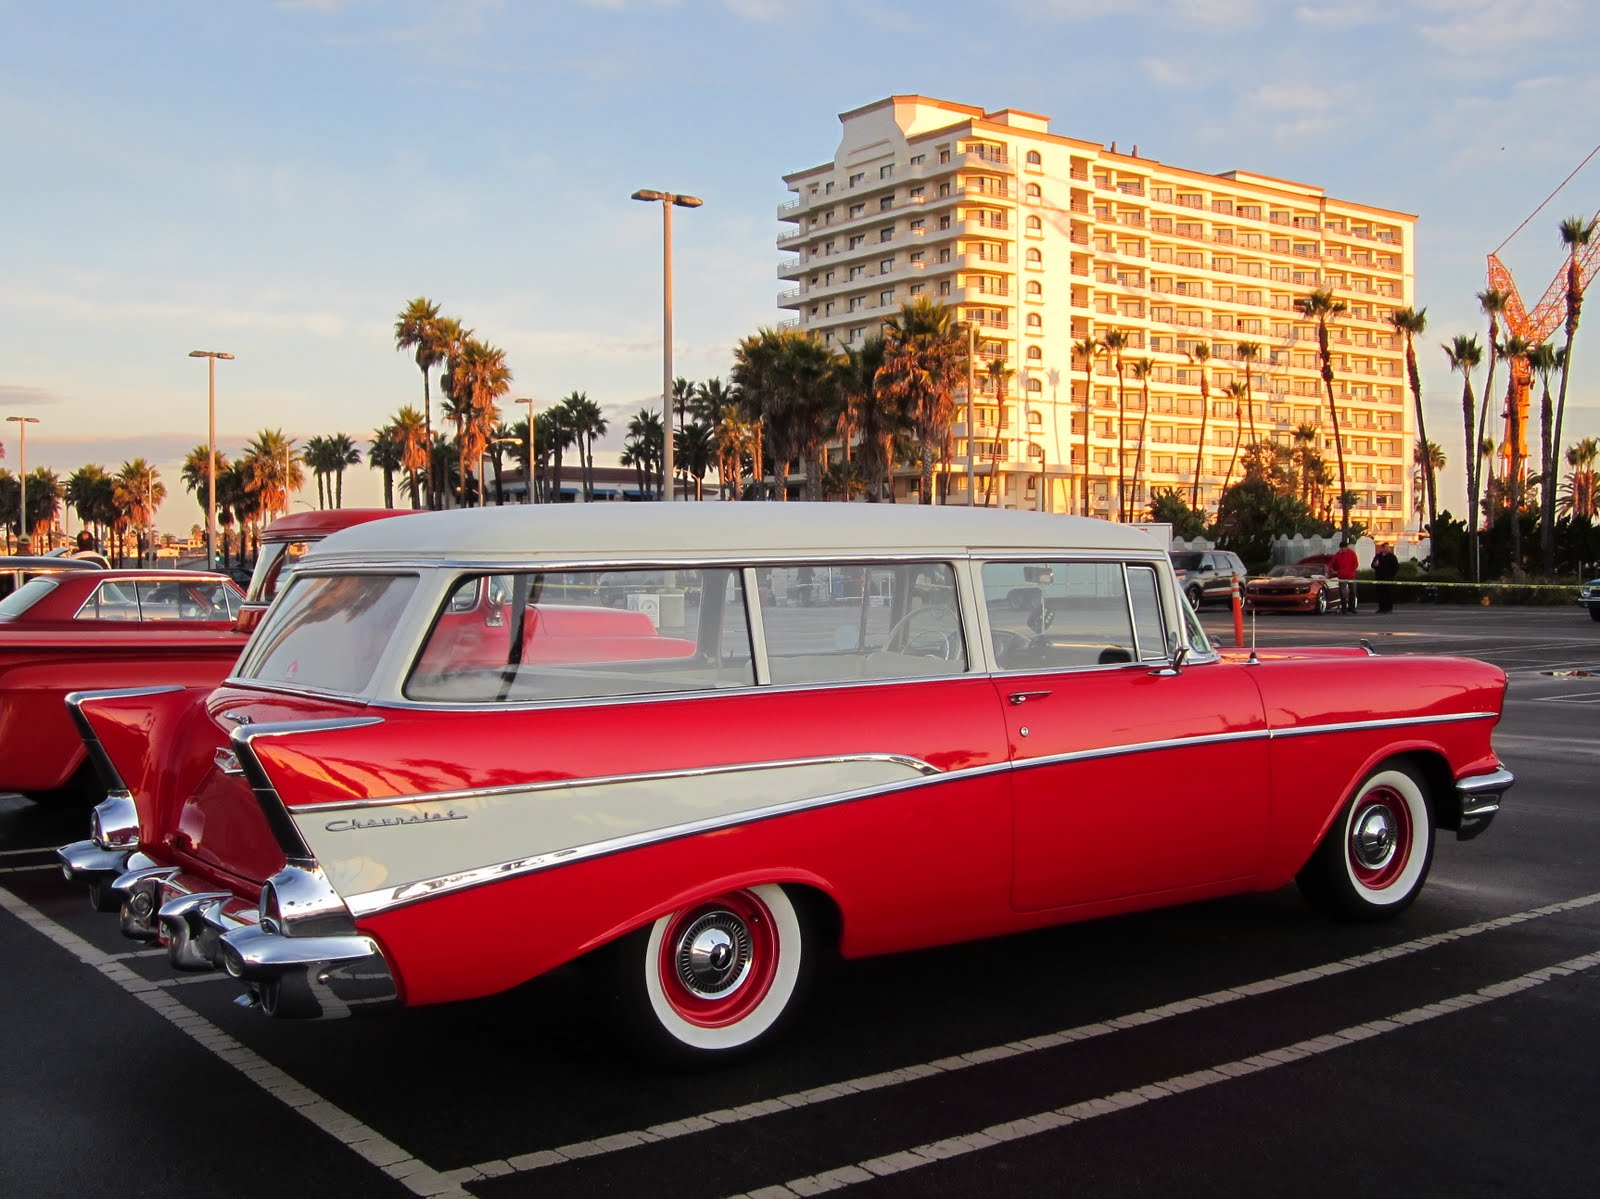 Covering Classic Cars Surf City USA Car Show In Huntington Beach - Classic car show california